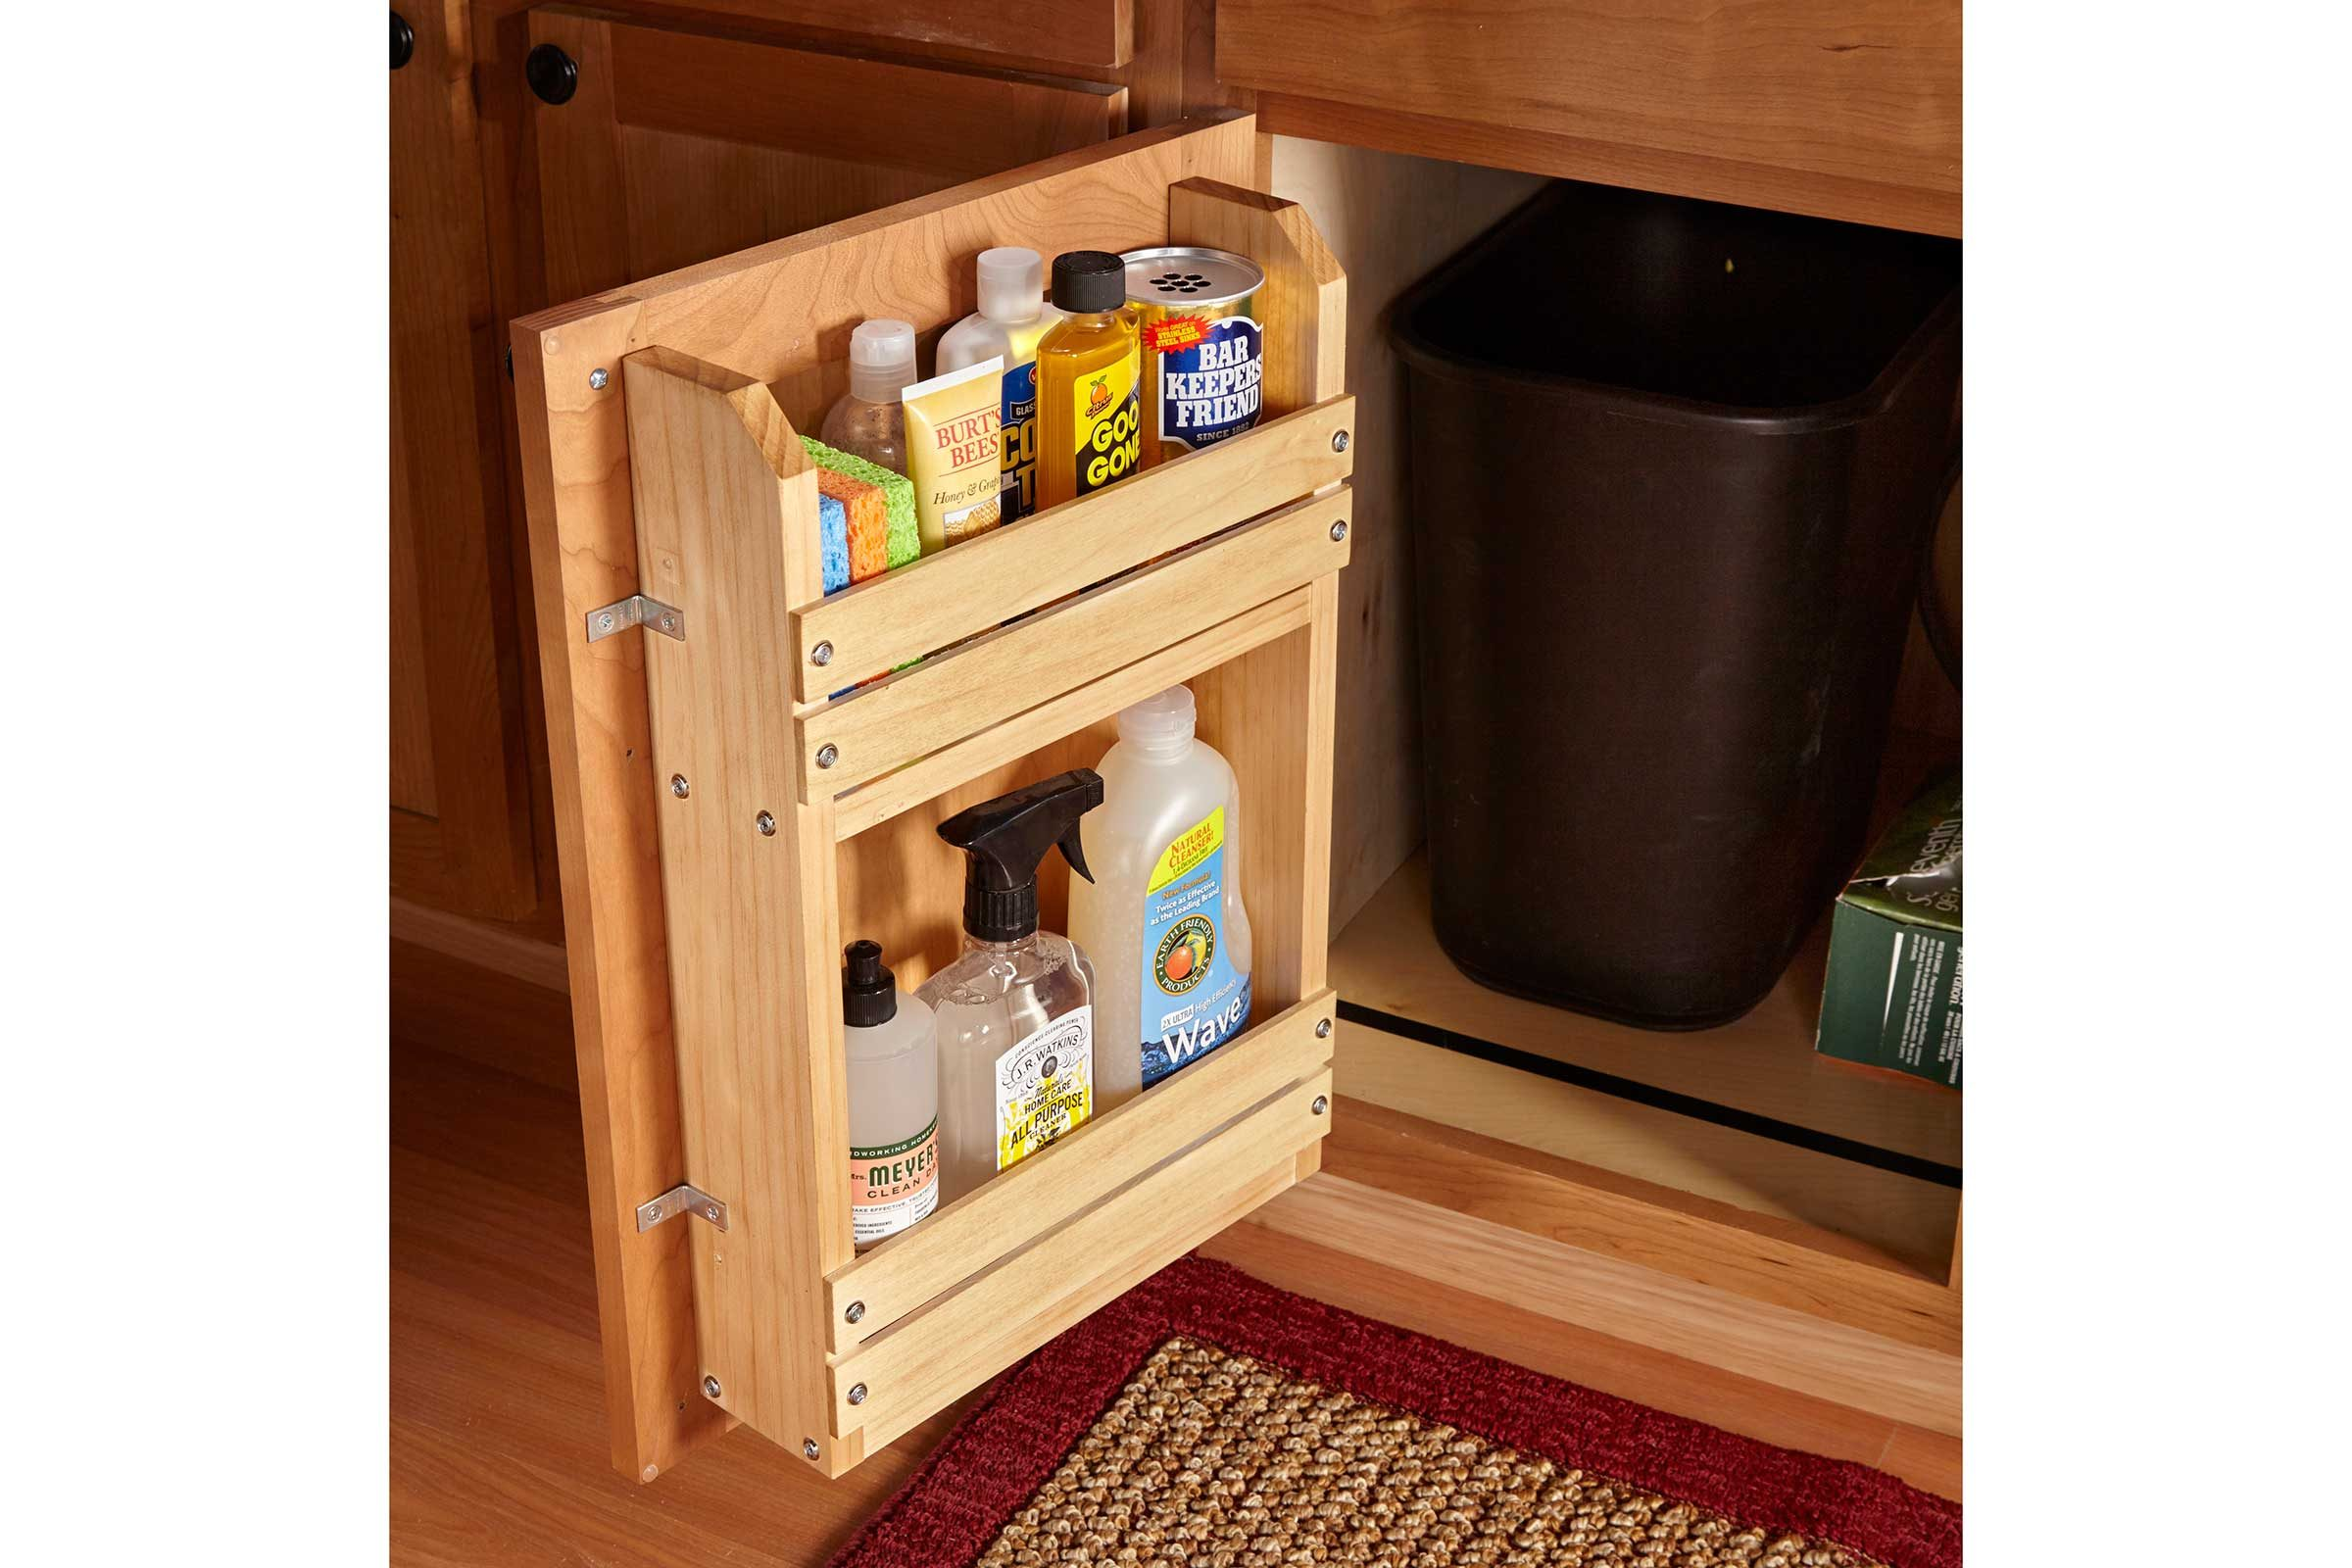 Homemade Wooden Cabi  Door Latches furthermore Bookshelf Speaker Cabi  Plans also DIY Wood Tool Box Plans moreover Wood Lathe Tools Names also House Plans With Detached Garage Breezeway. on build your own cabinets diagram